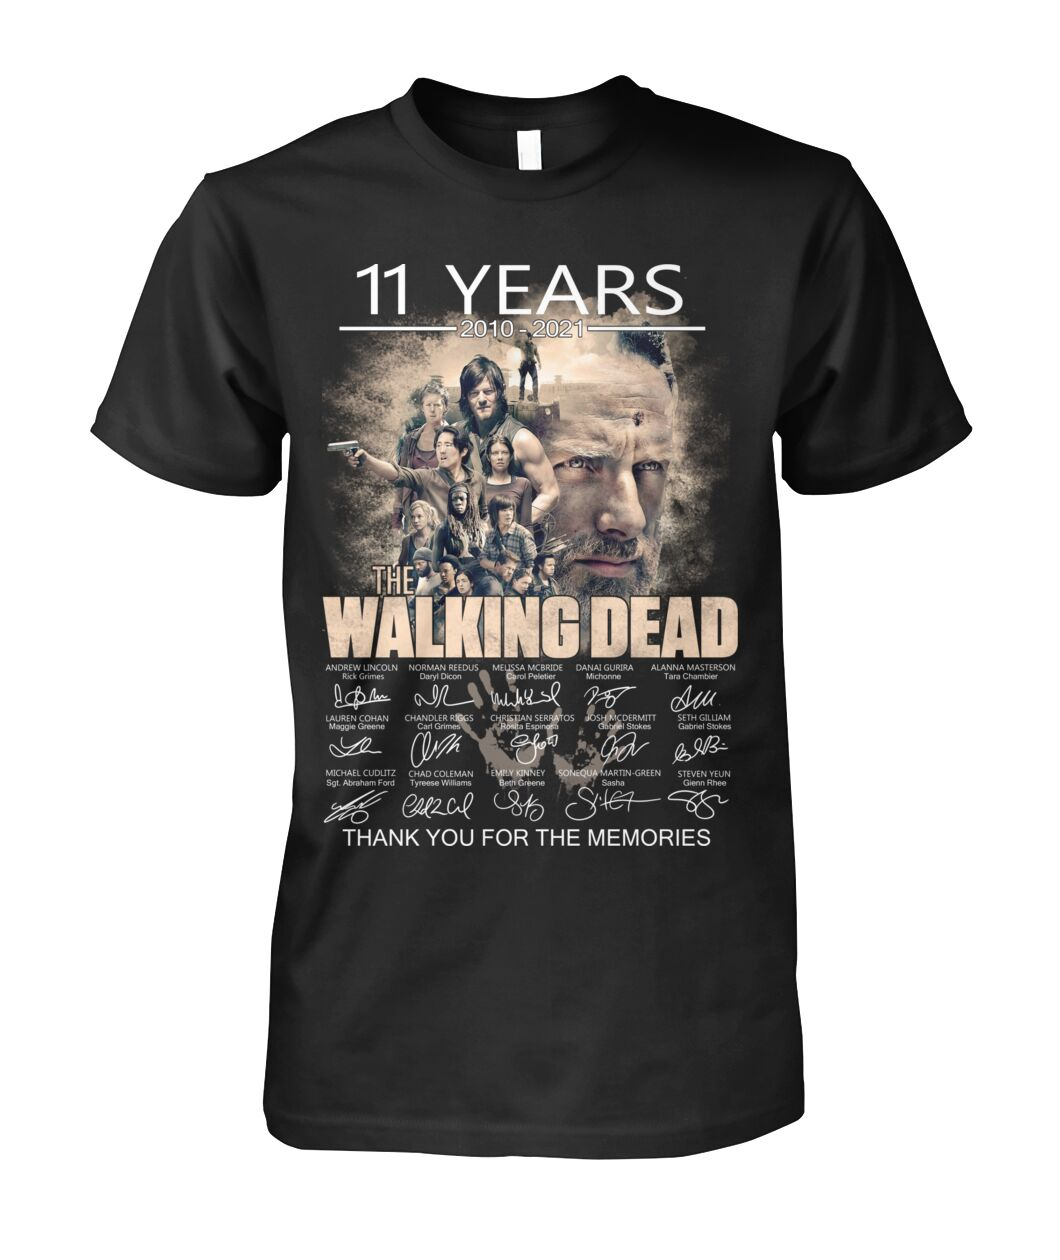 11 years The Walking Dead Signatures Thank You For The Memories Shirt